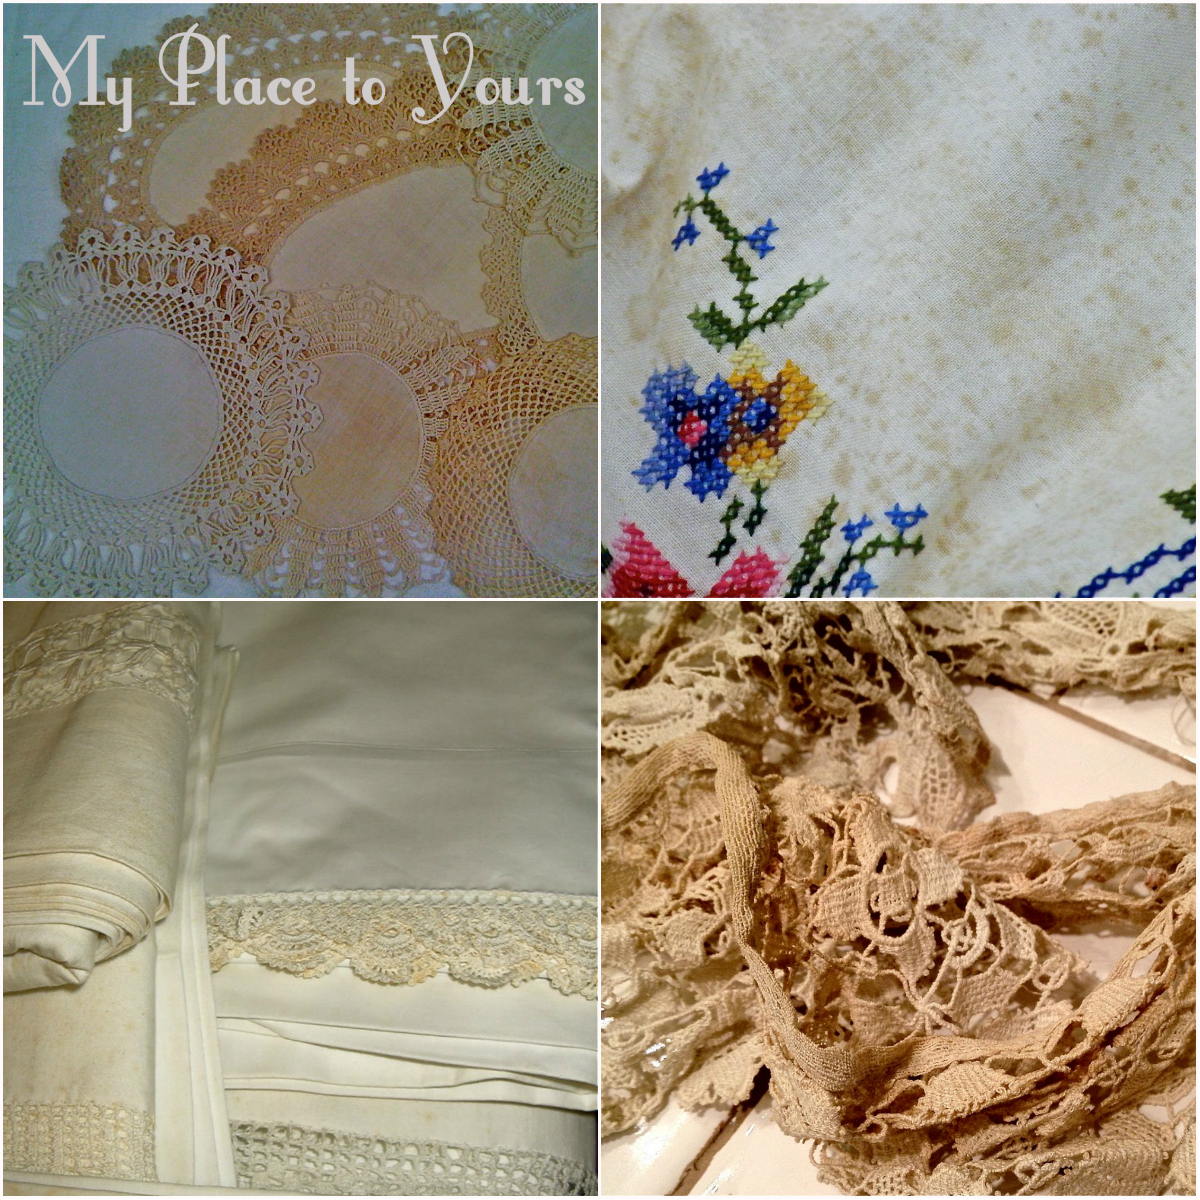 Storage Stain Removal How To Care For Vintage Linens Lace - How To Remove Old White Heat Stains From Tablecloths